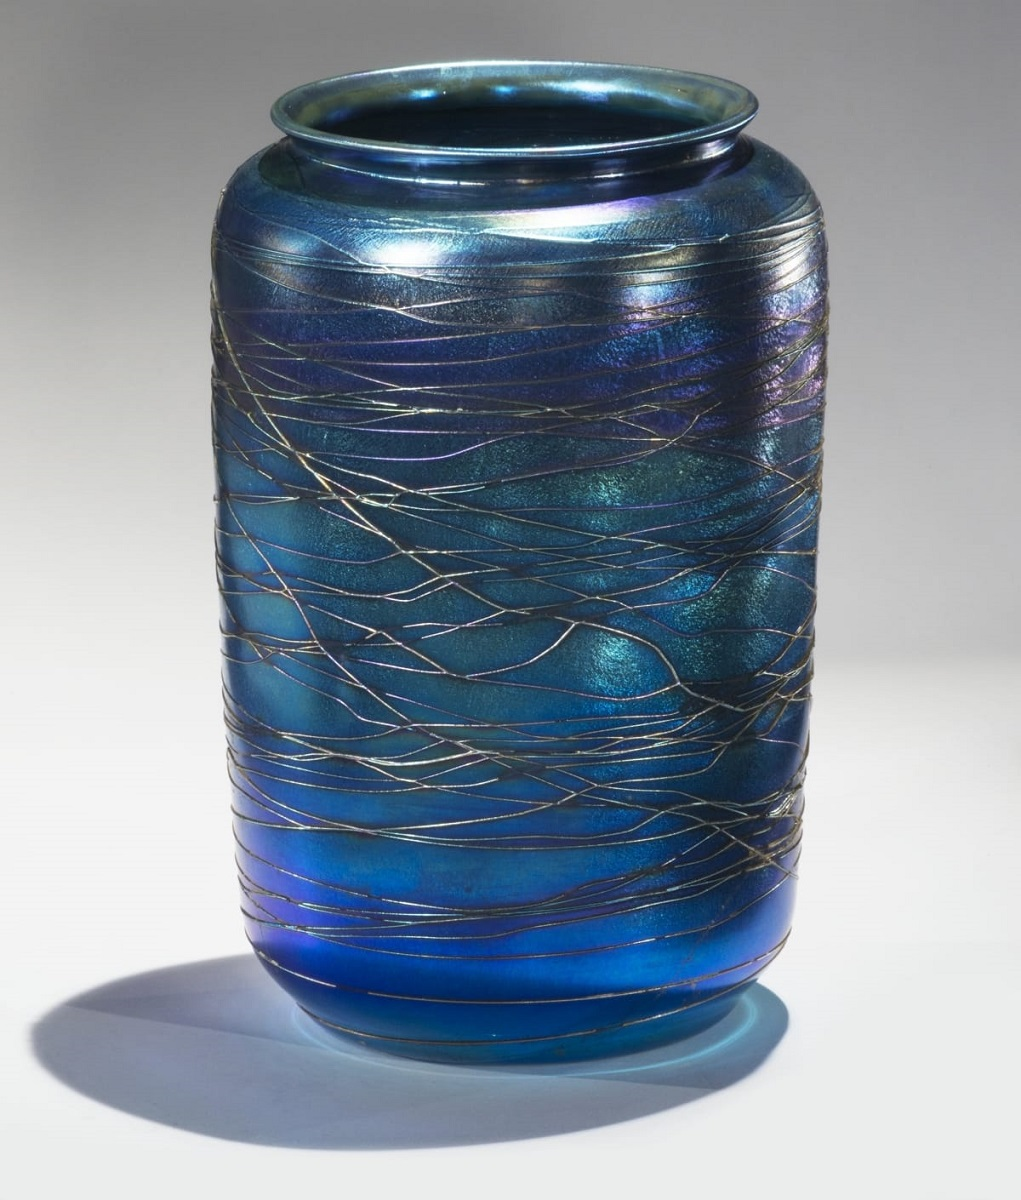 Wide blue glass vase with straight sides and wide opening, with pattern of lines running around it